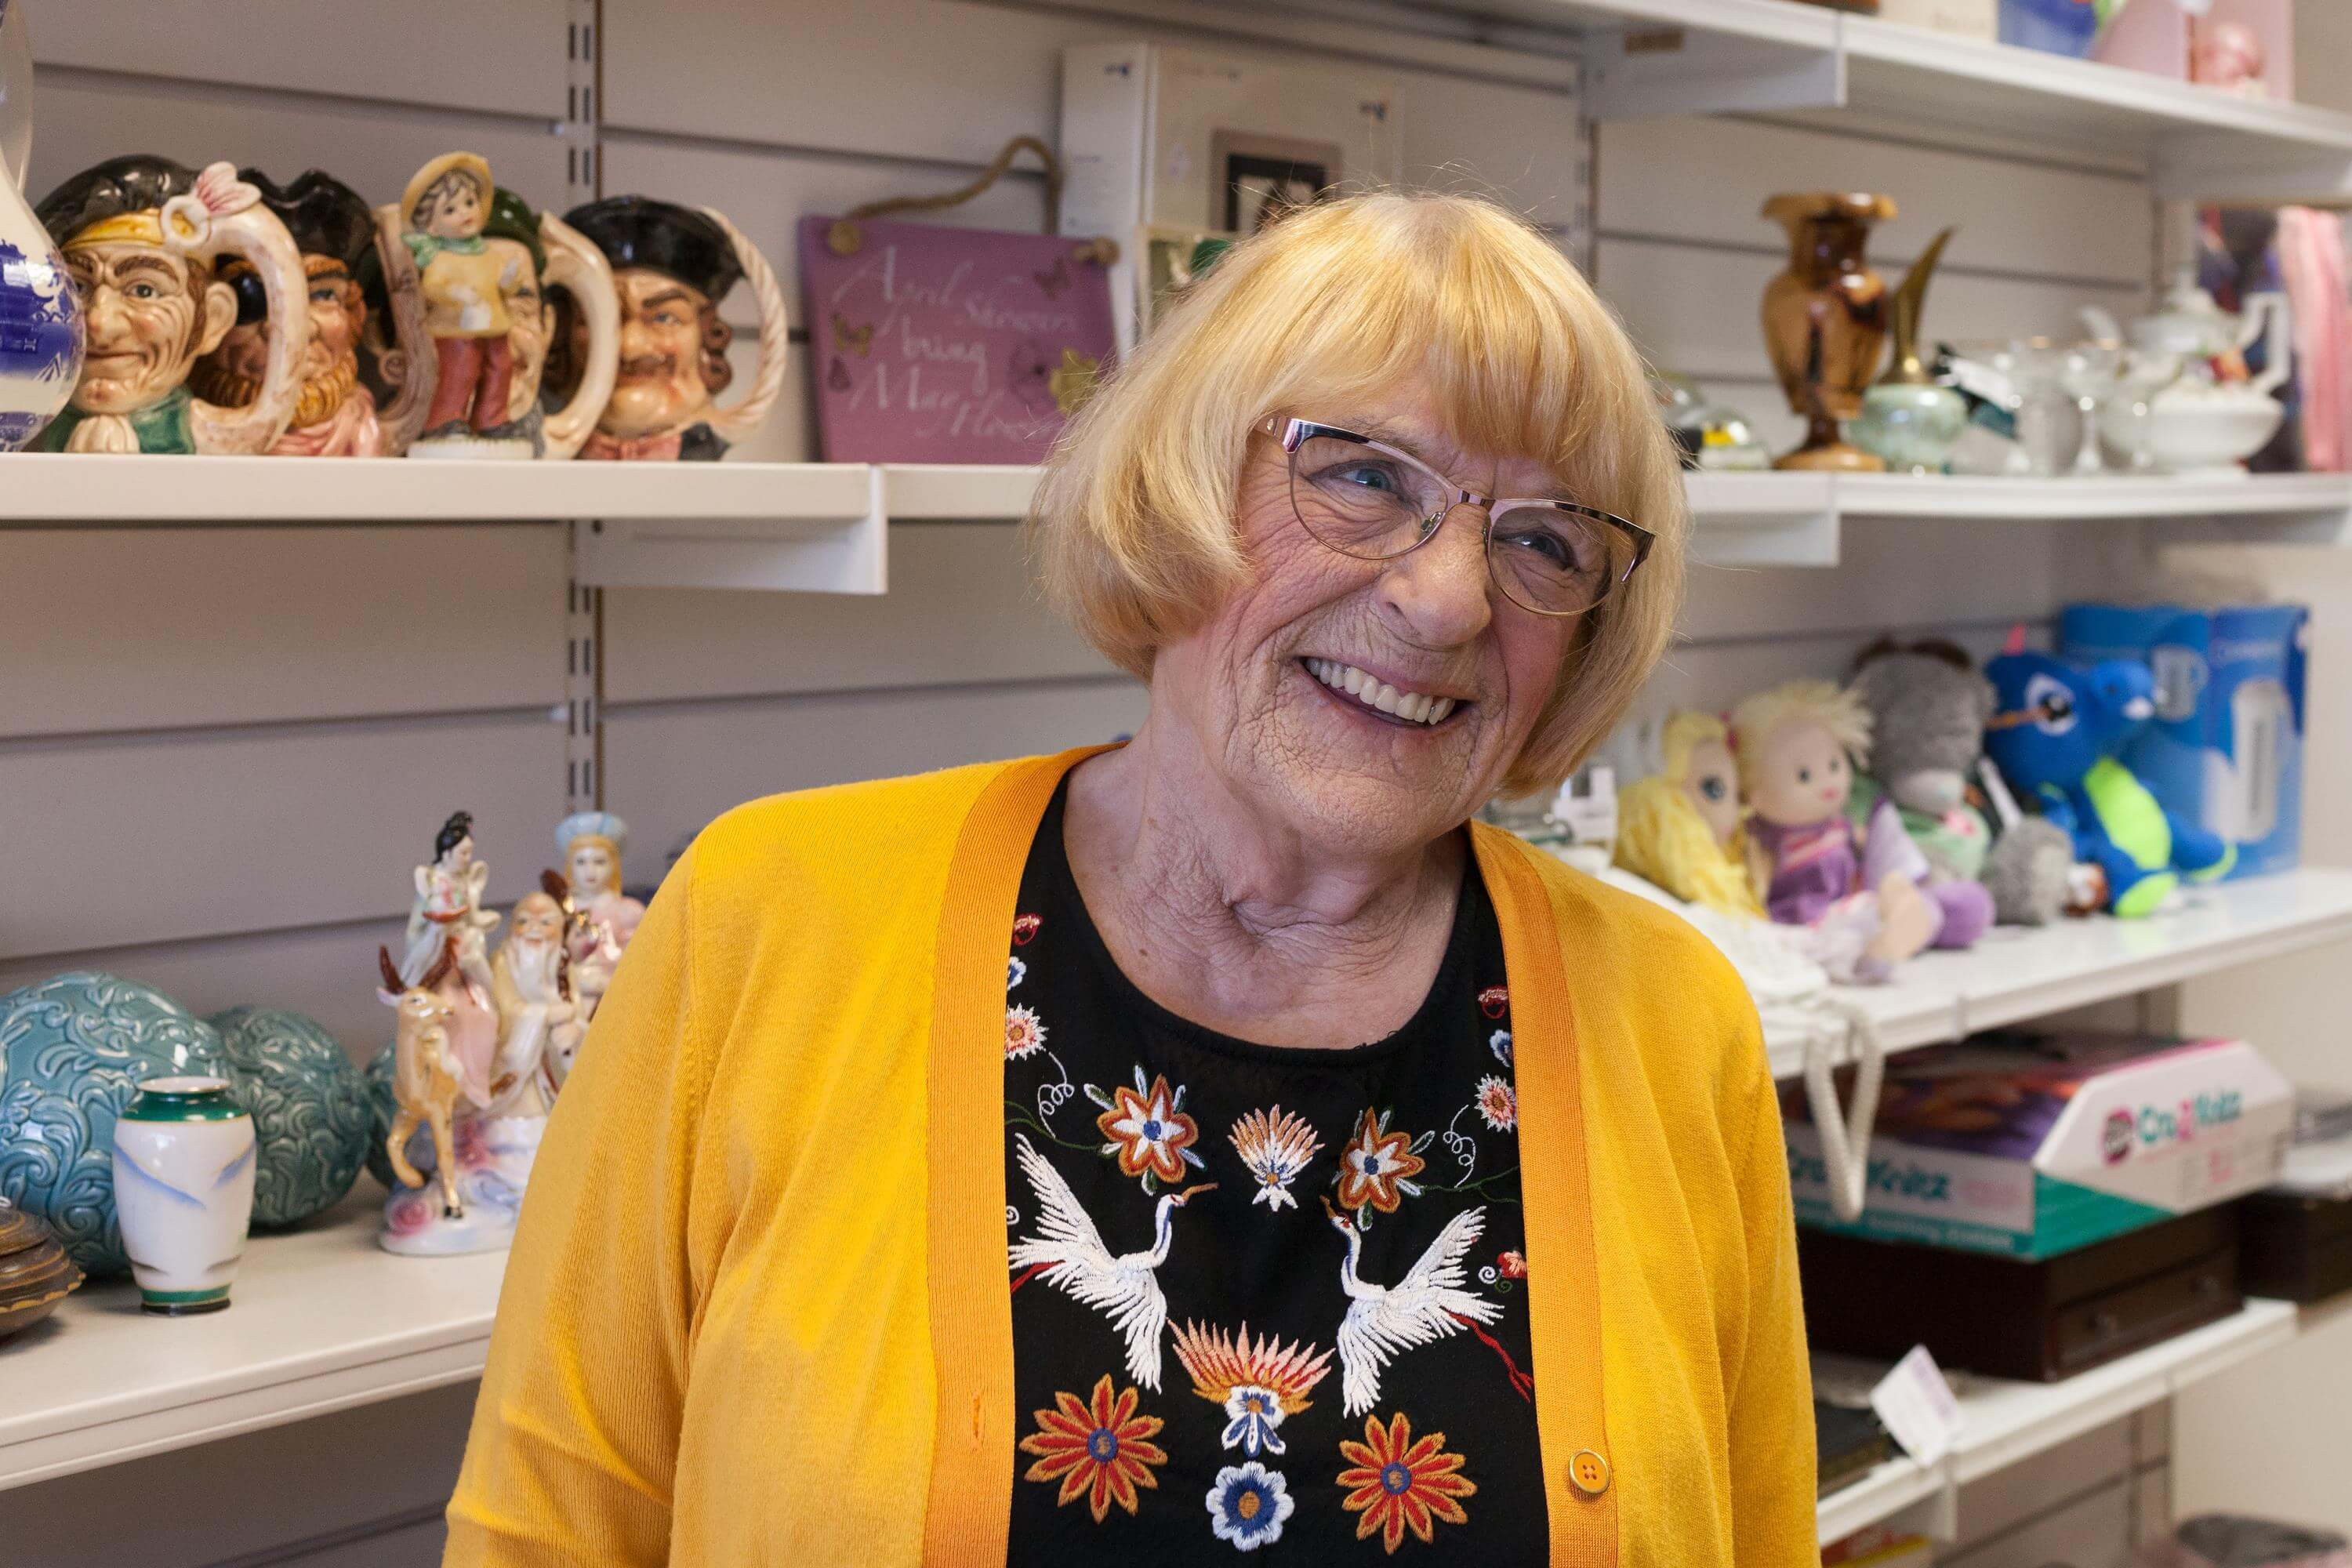 Woman smiling in front of shop shelves filled with bric-a-brac